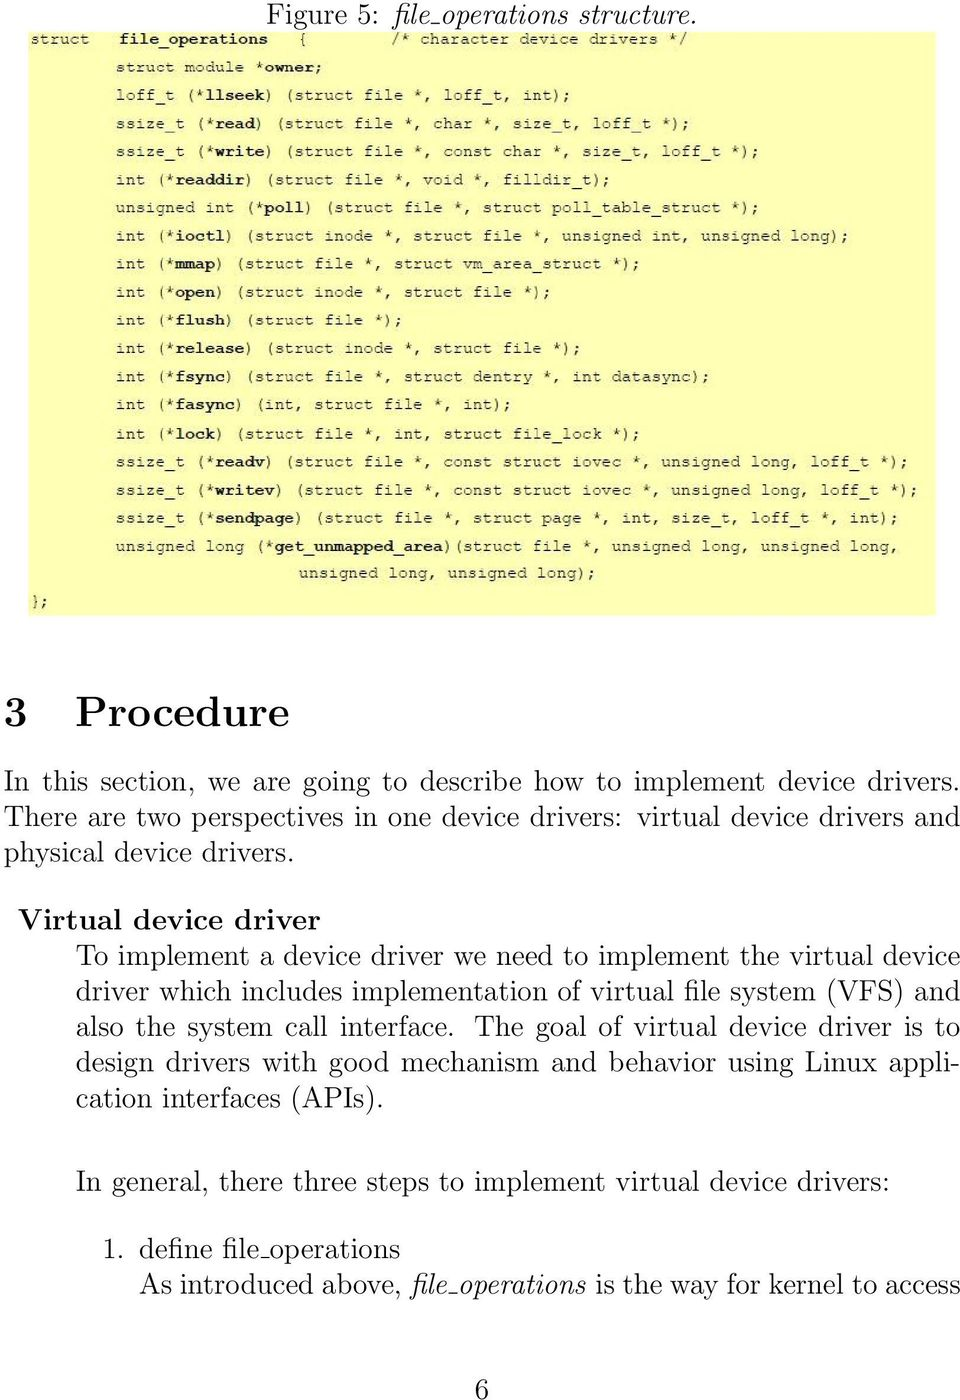 Virtual device driver To implement a device driver we need to implement the virtual device driver which includes implementation of virtual file system (VFS) and also the system